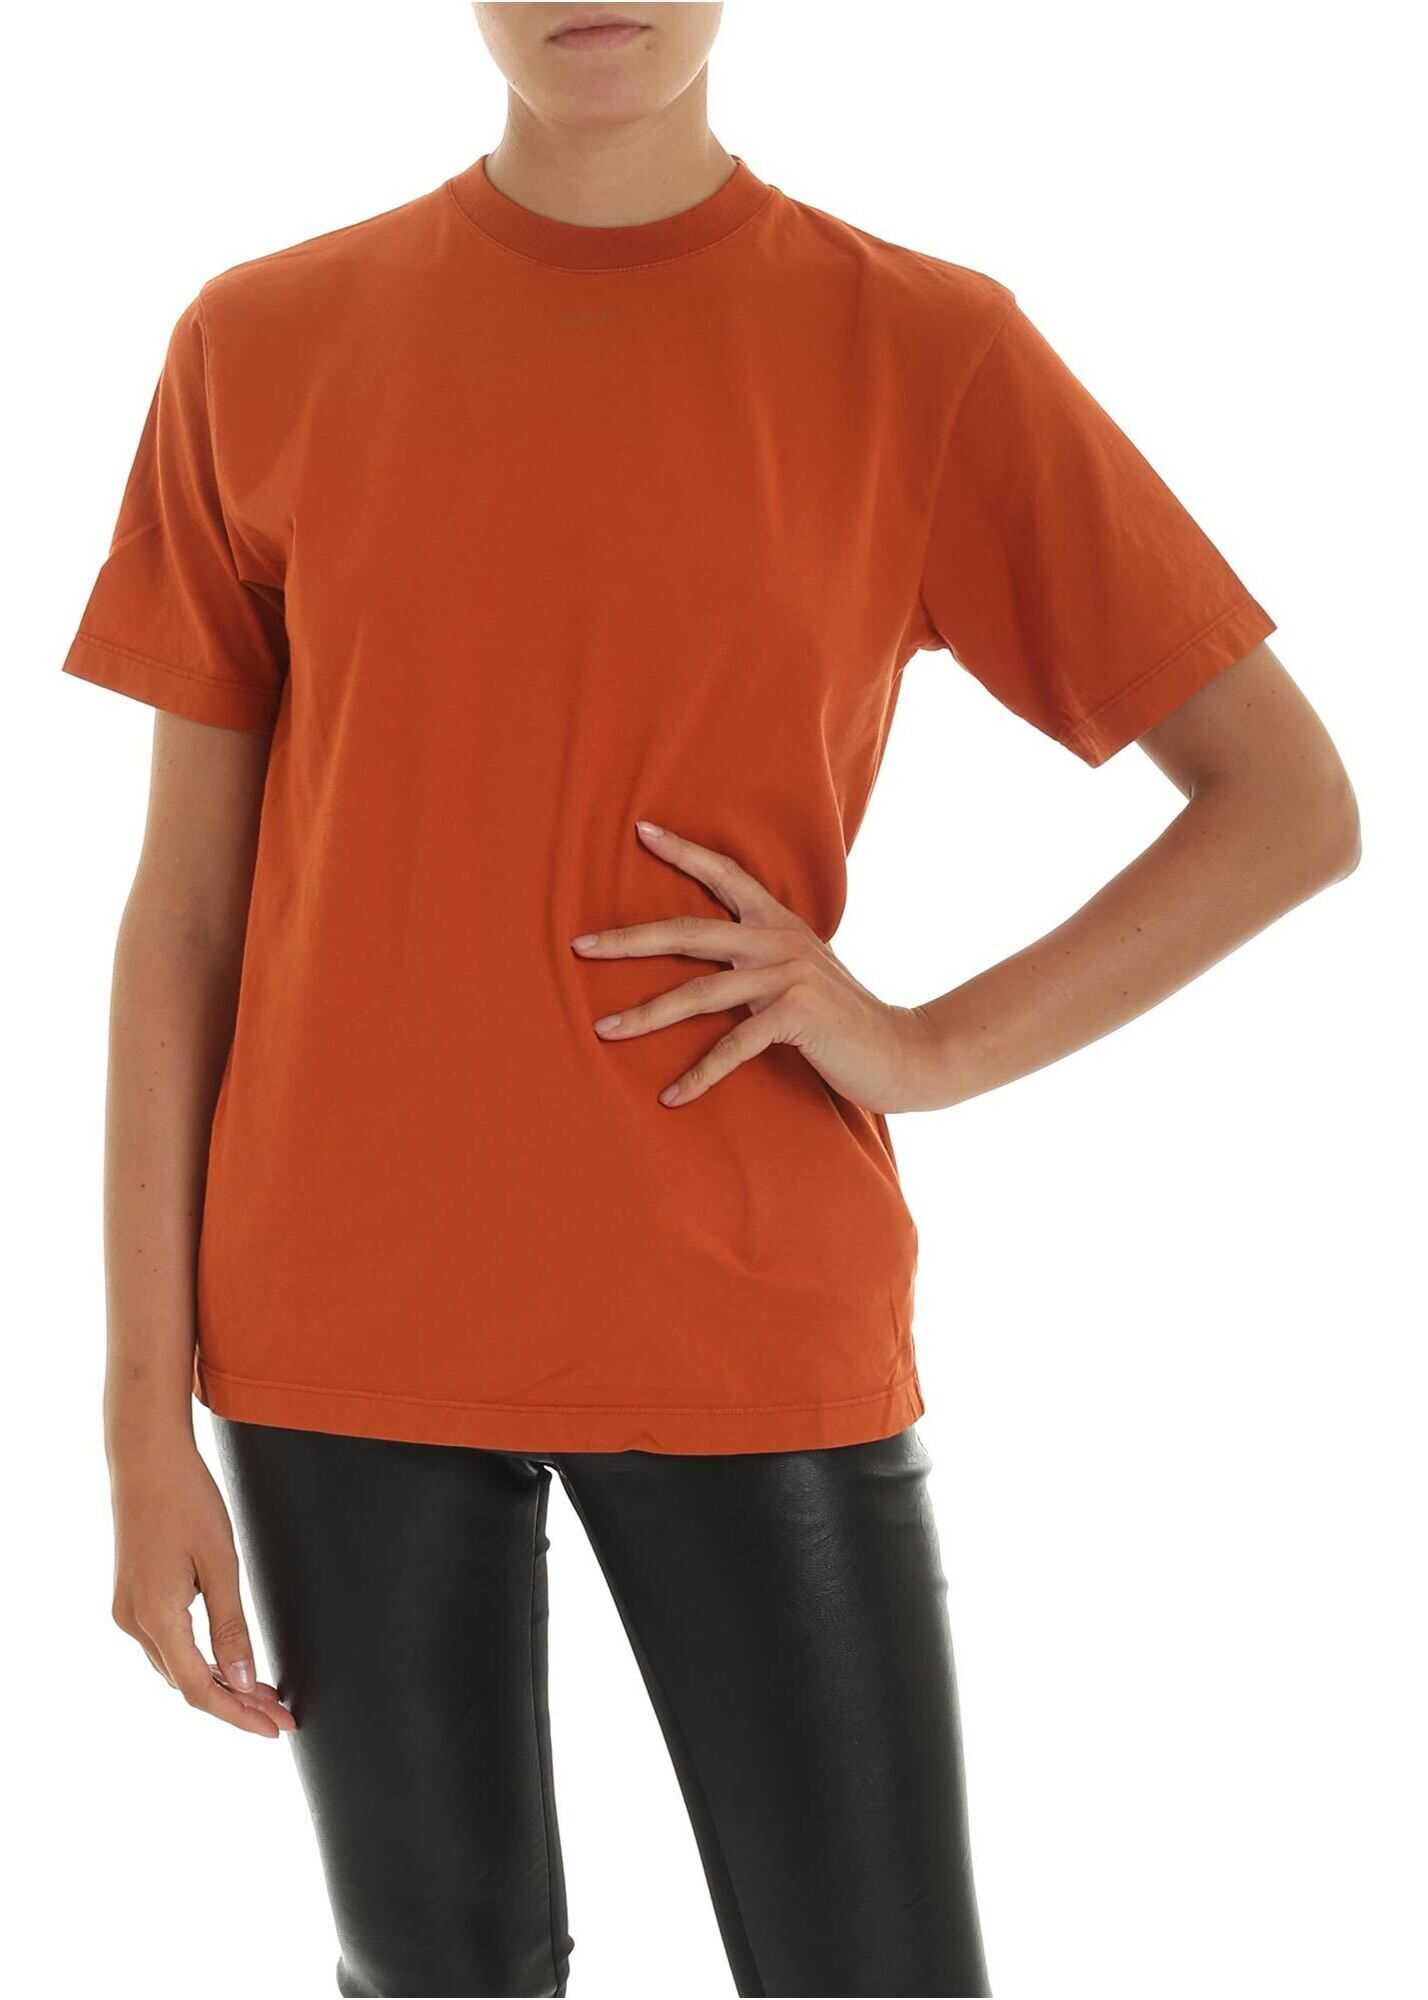 T-Shirt With Off Print In Orange Color